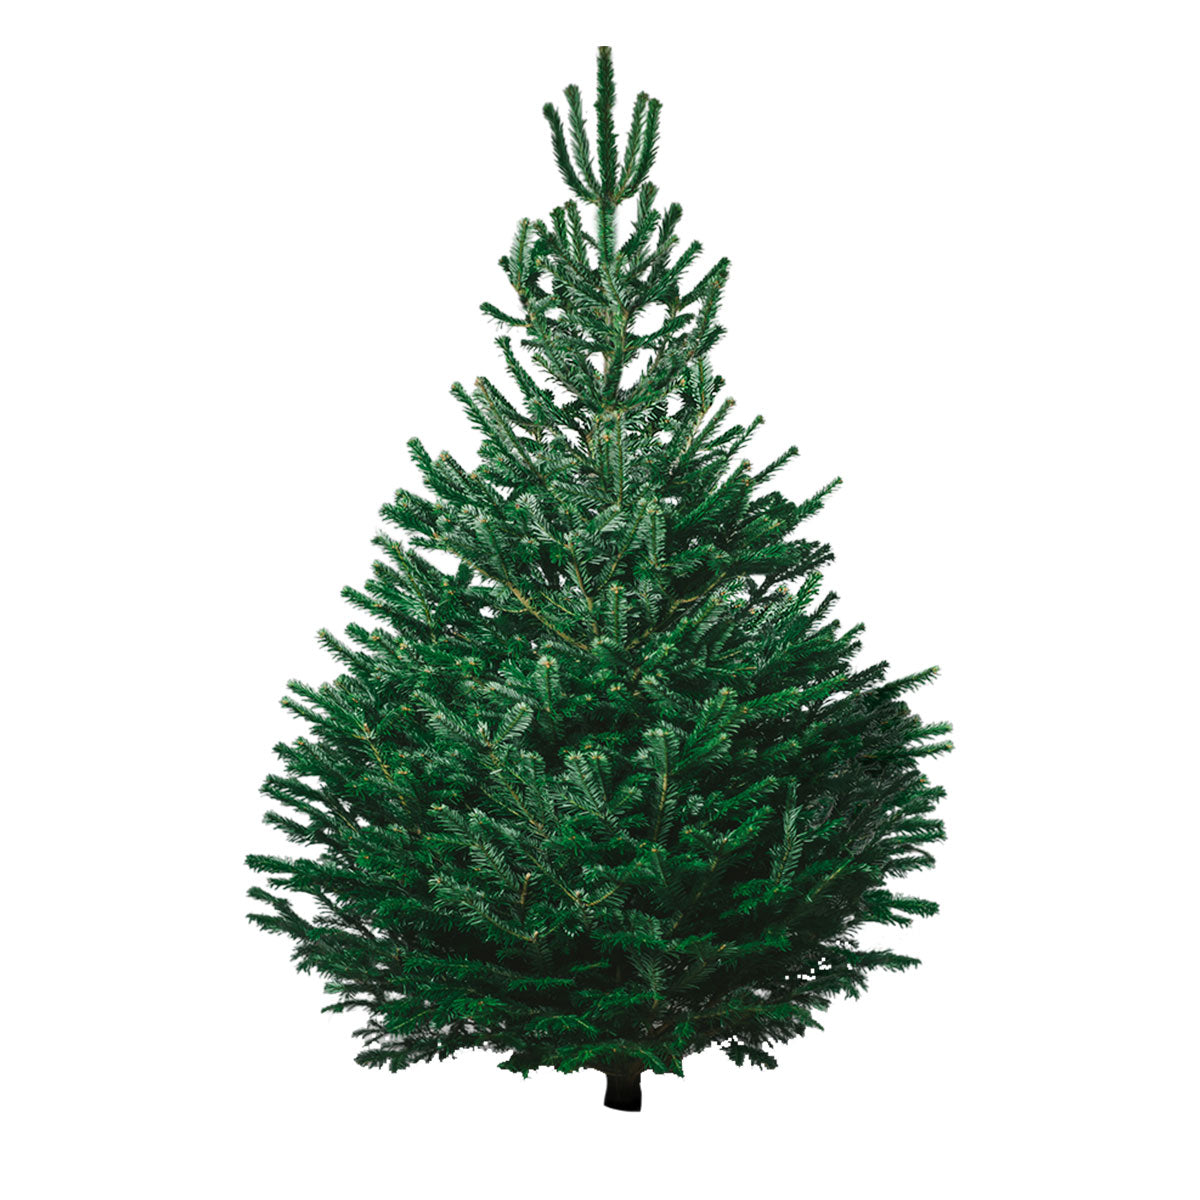 Christmas Tree Size Large 150cm - 175cm - CHRISTMAS TREE HONG KONG